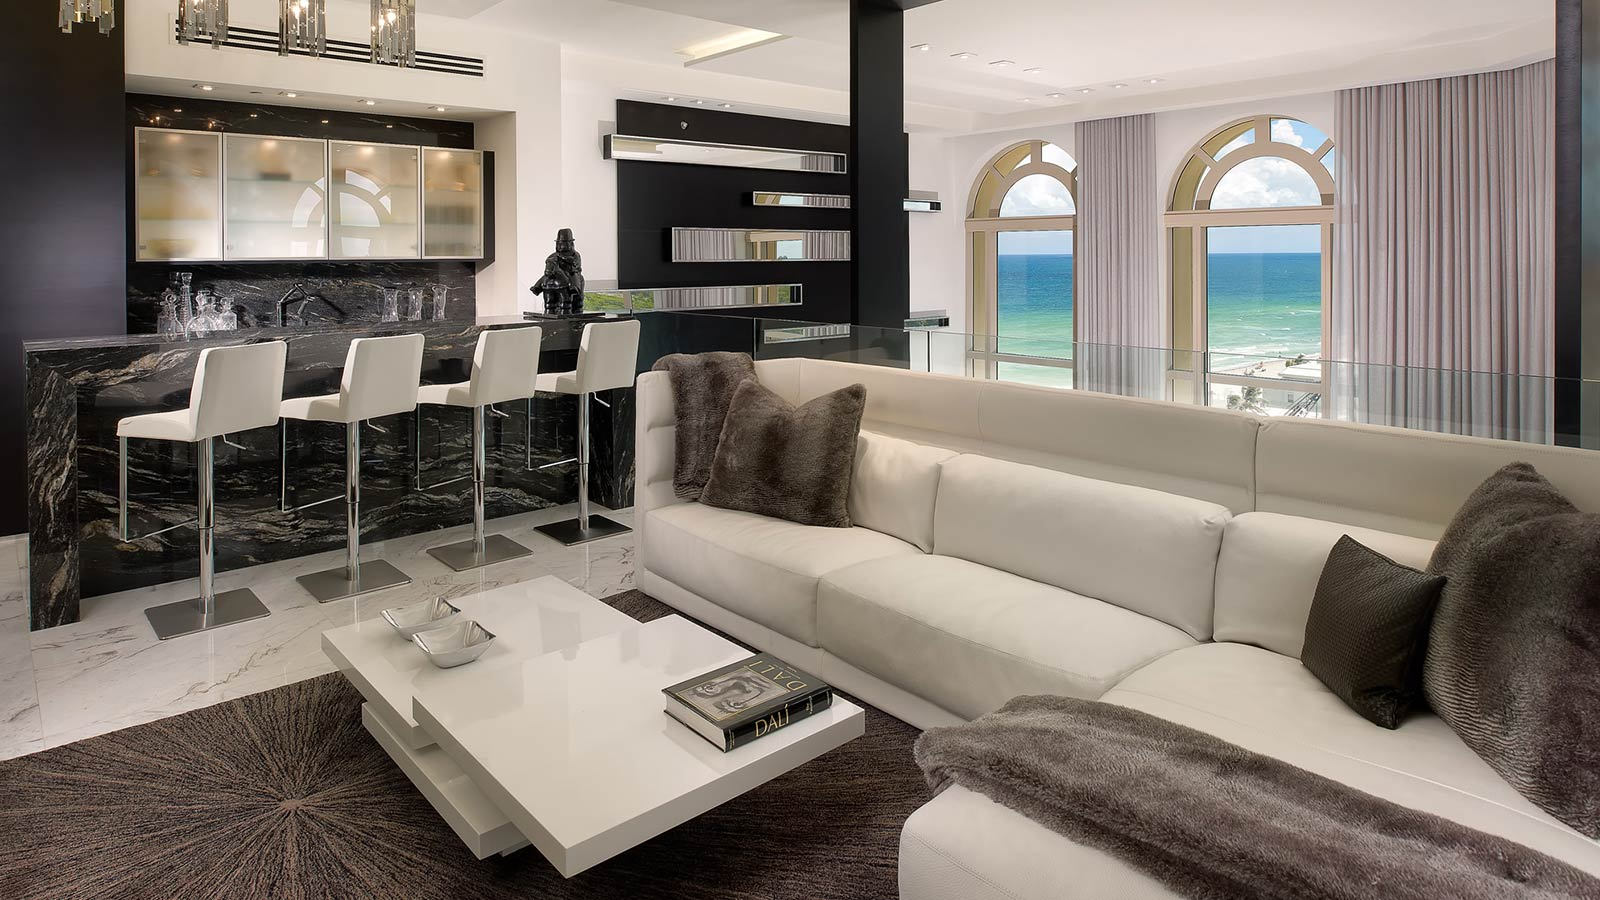 Hollywood Penthouse By Pepe Calderin Design